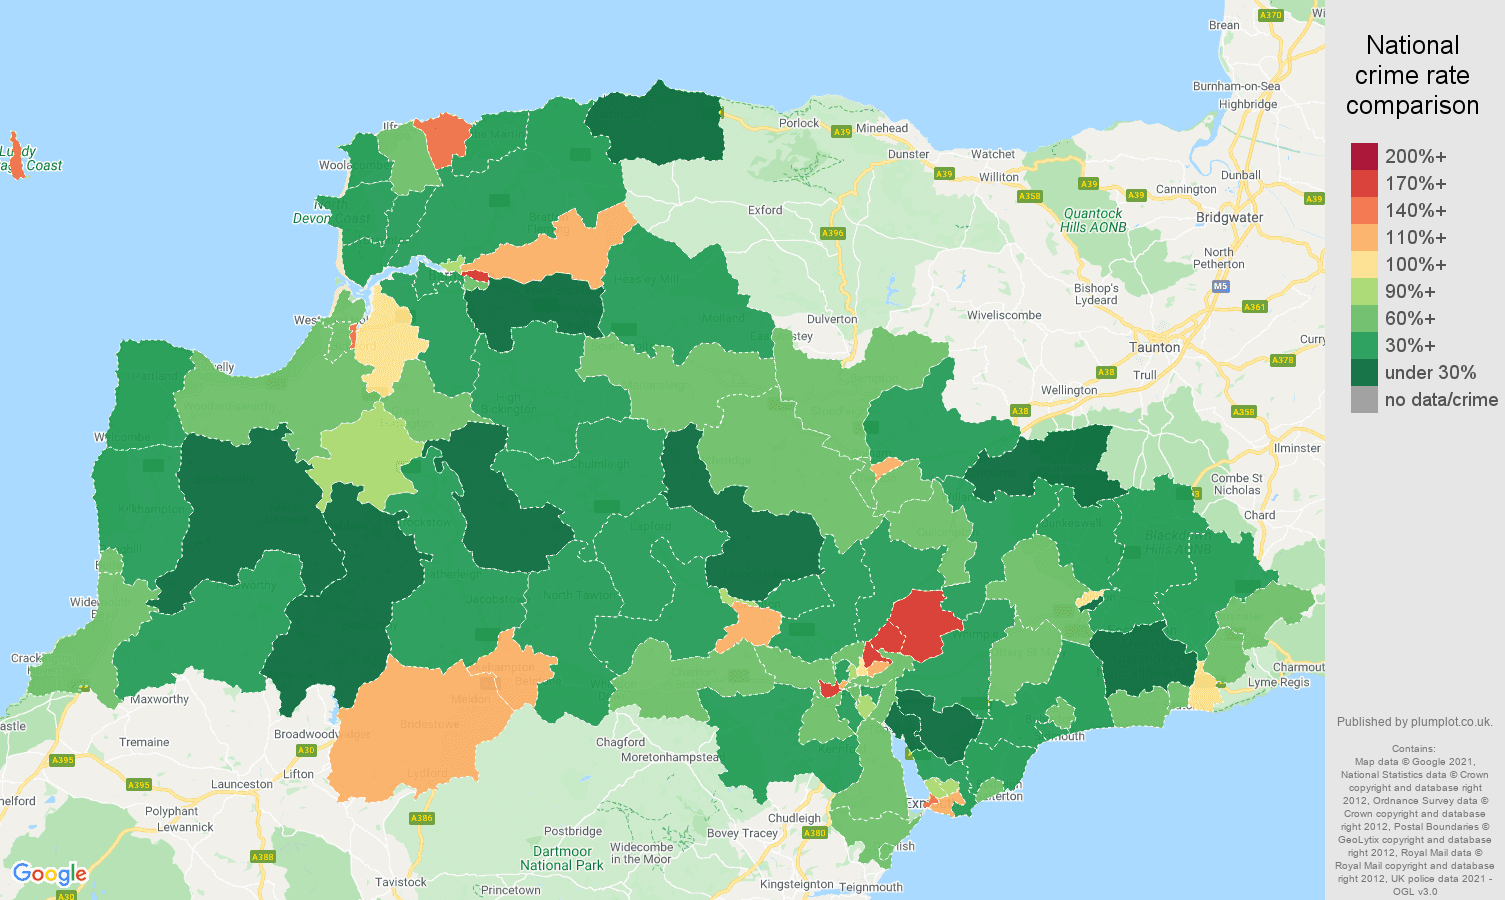 Exeter criminal damage and arson crime rate comparison map